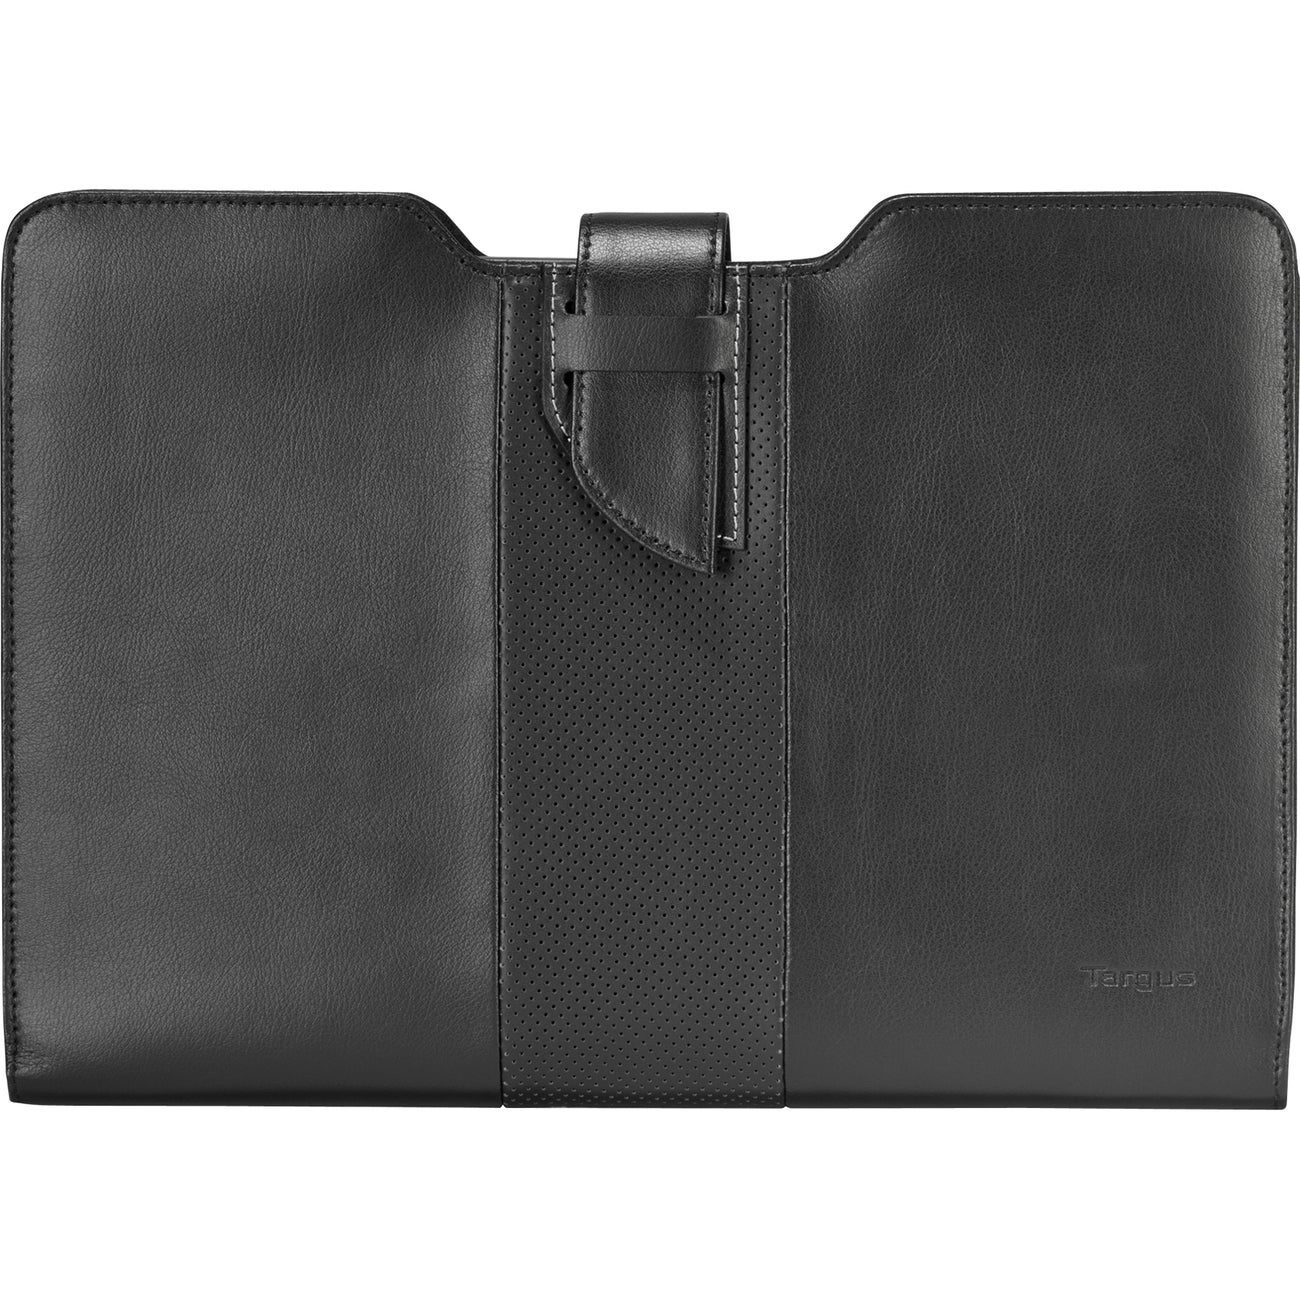 "Targus Ultralife TES606US Carrying Case (Sleeve) for 13.3"" Ultrabook,"